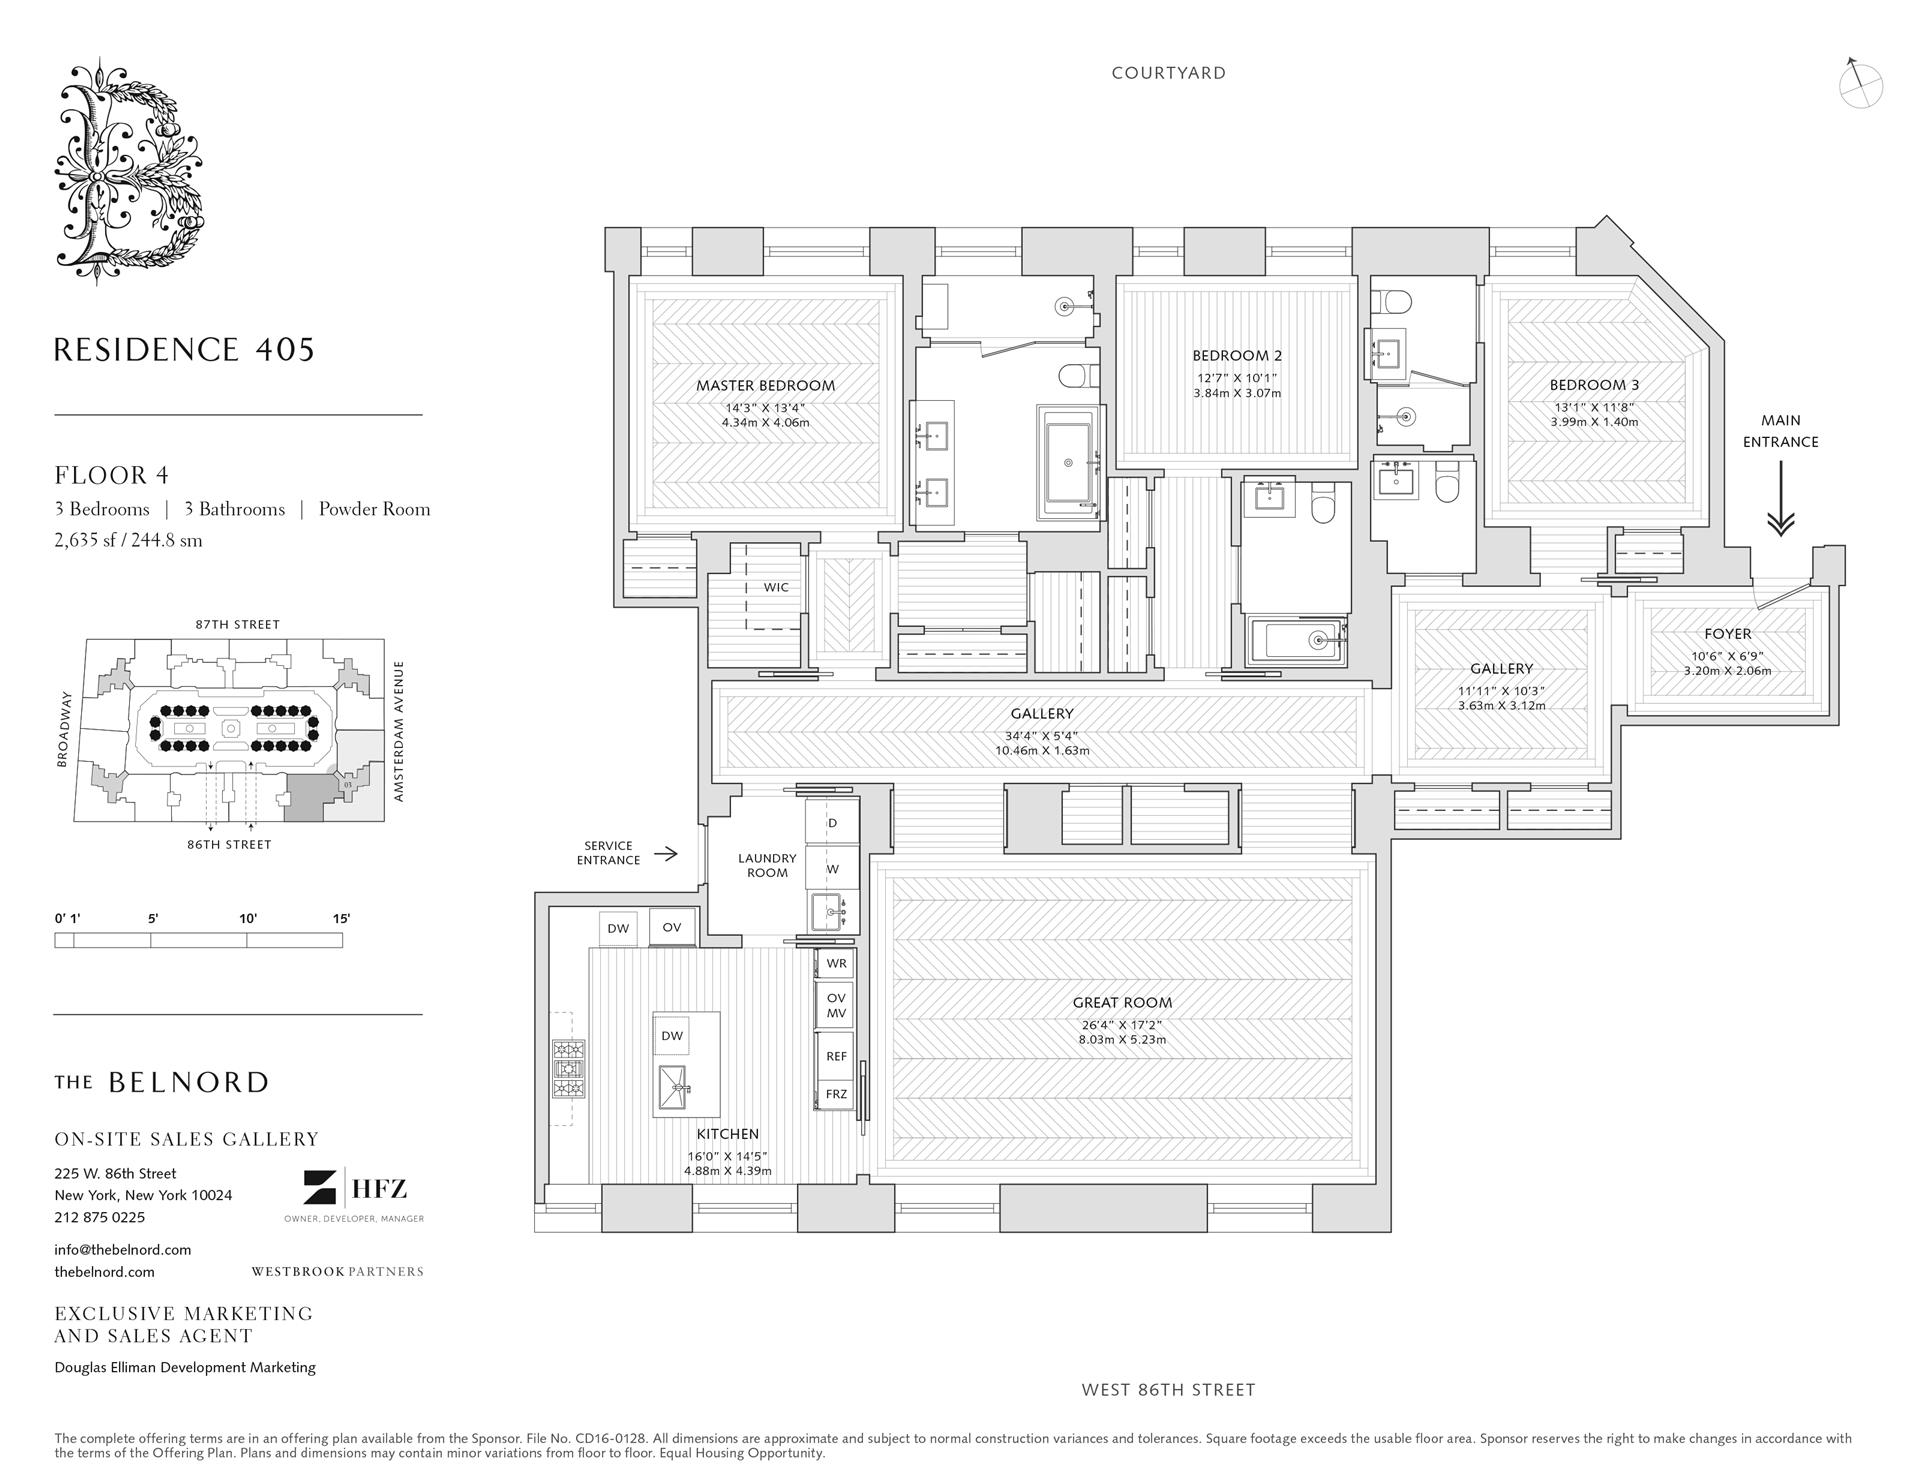 Floor plan of The Belnord, 225 West 86th St, 405 - Upper West Side, New York